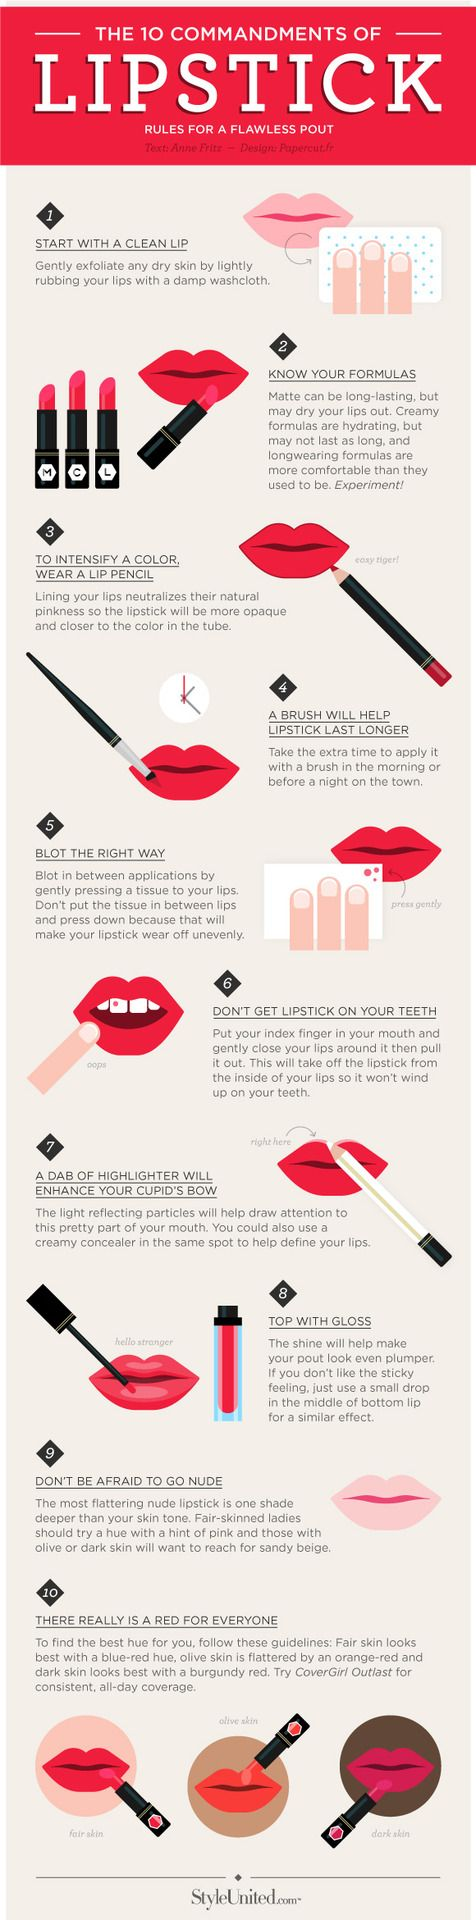 10 commandments of lipstick!